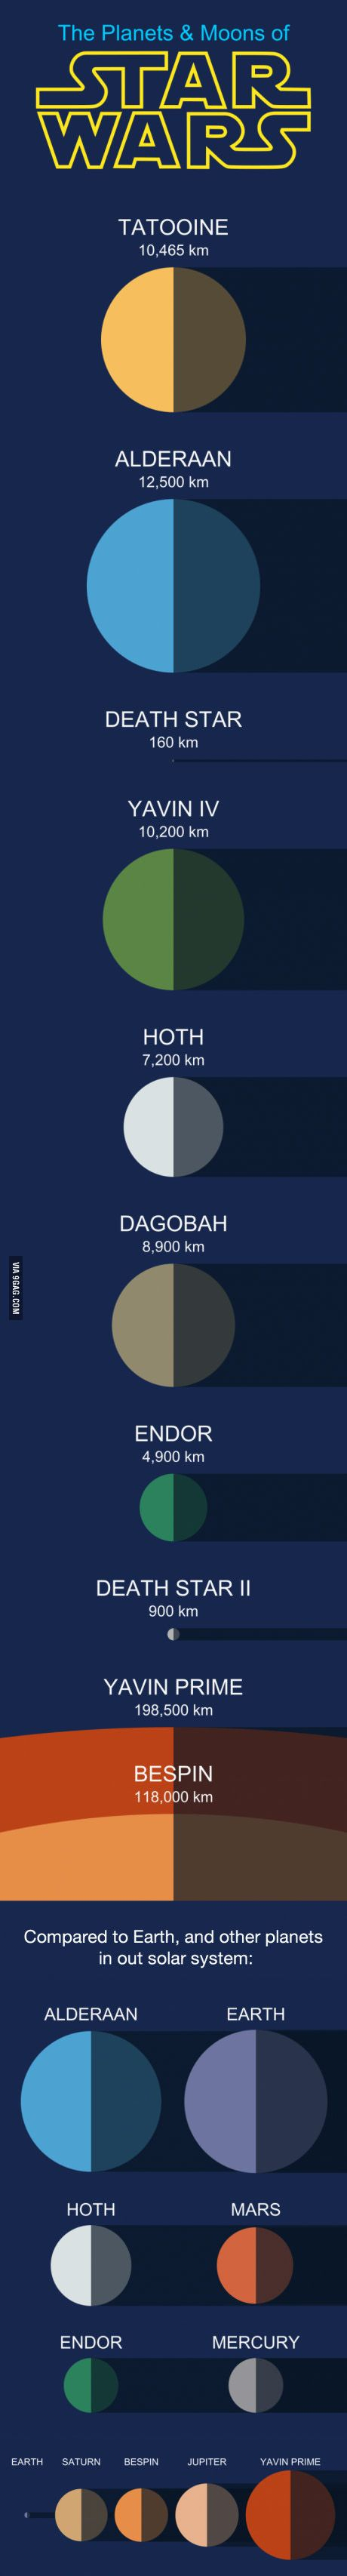 Star Wars Planets and Moons Comparison